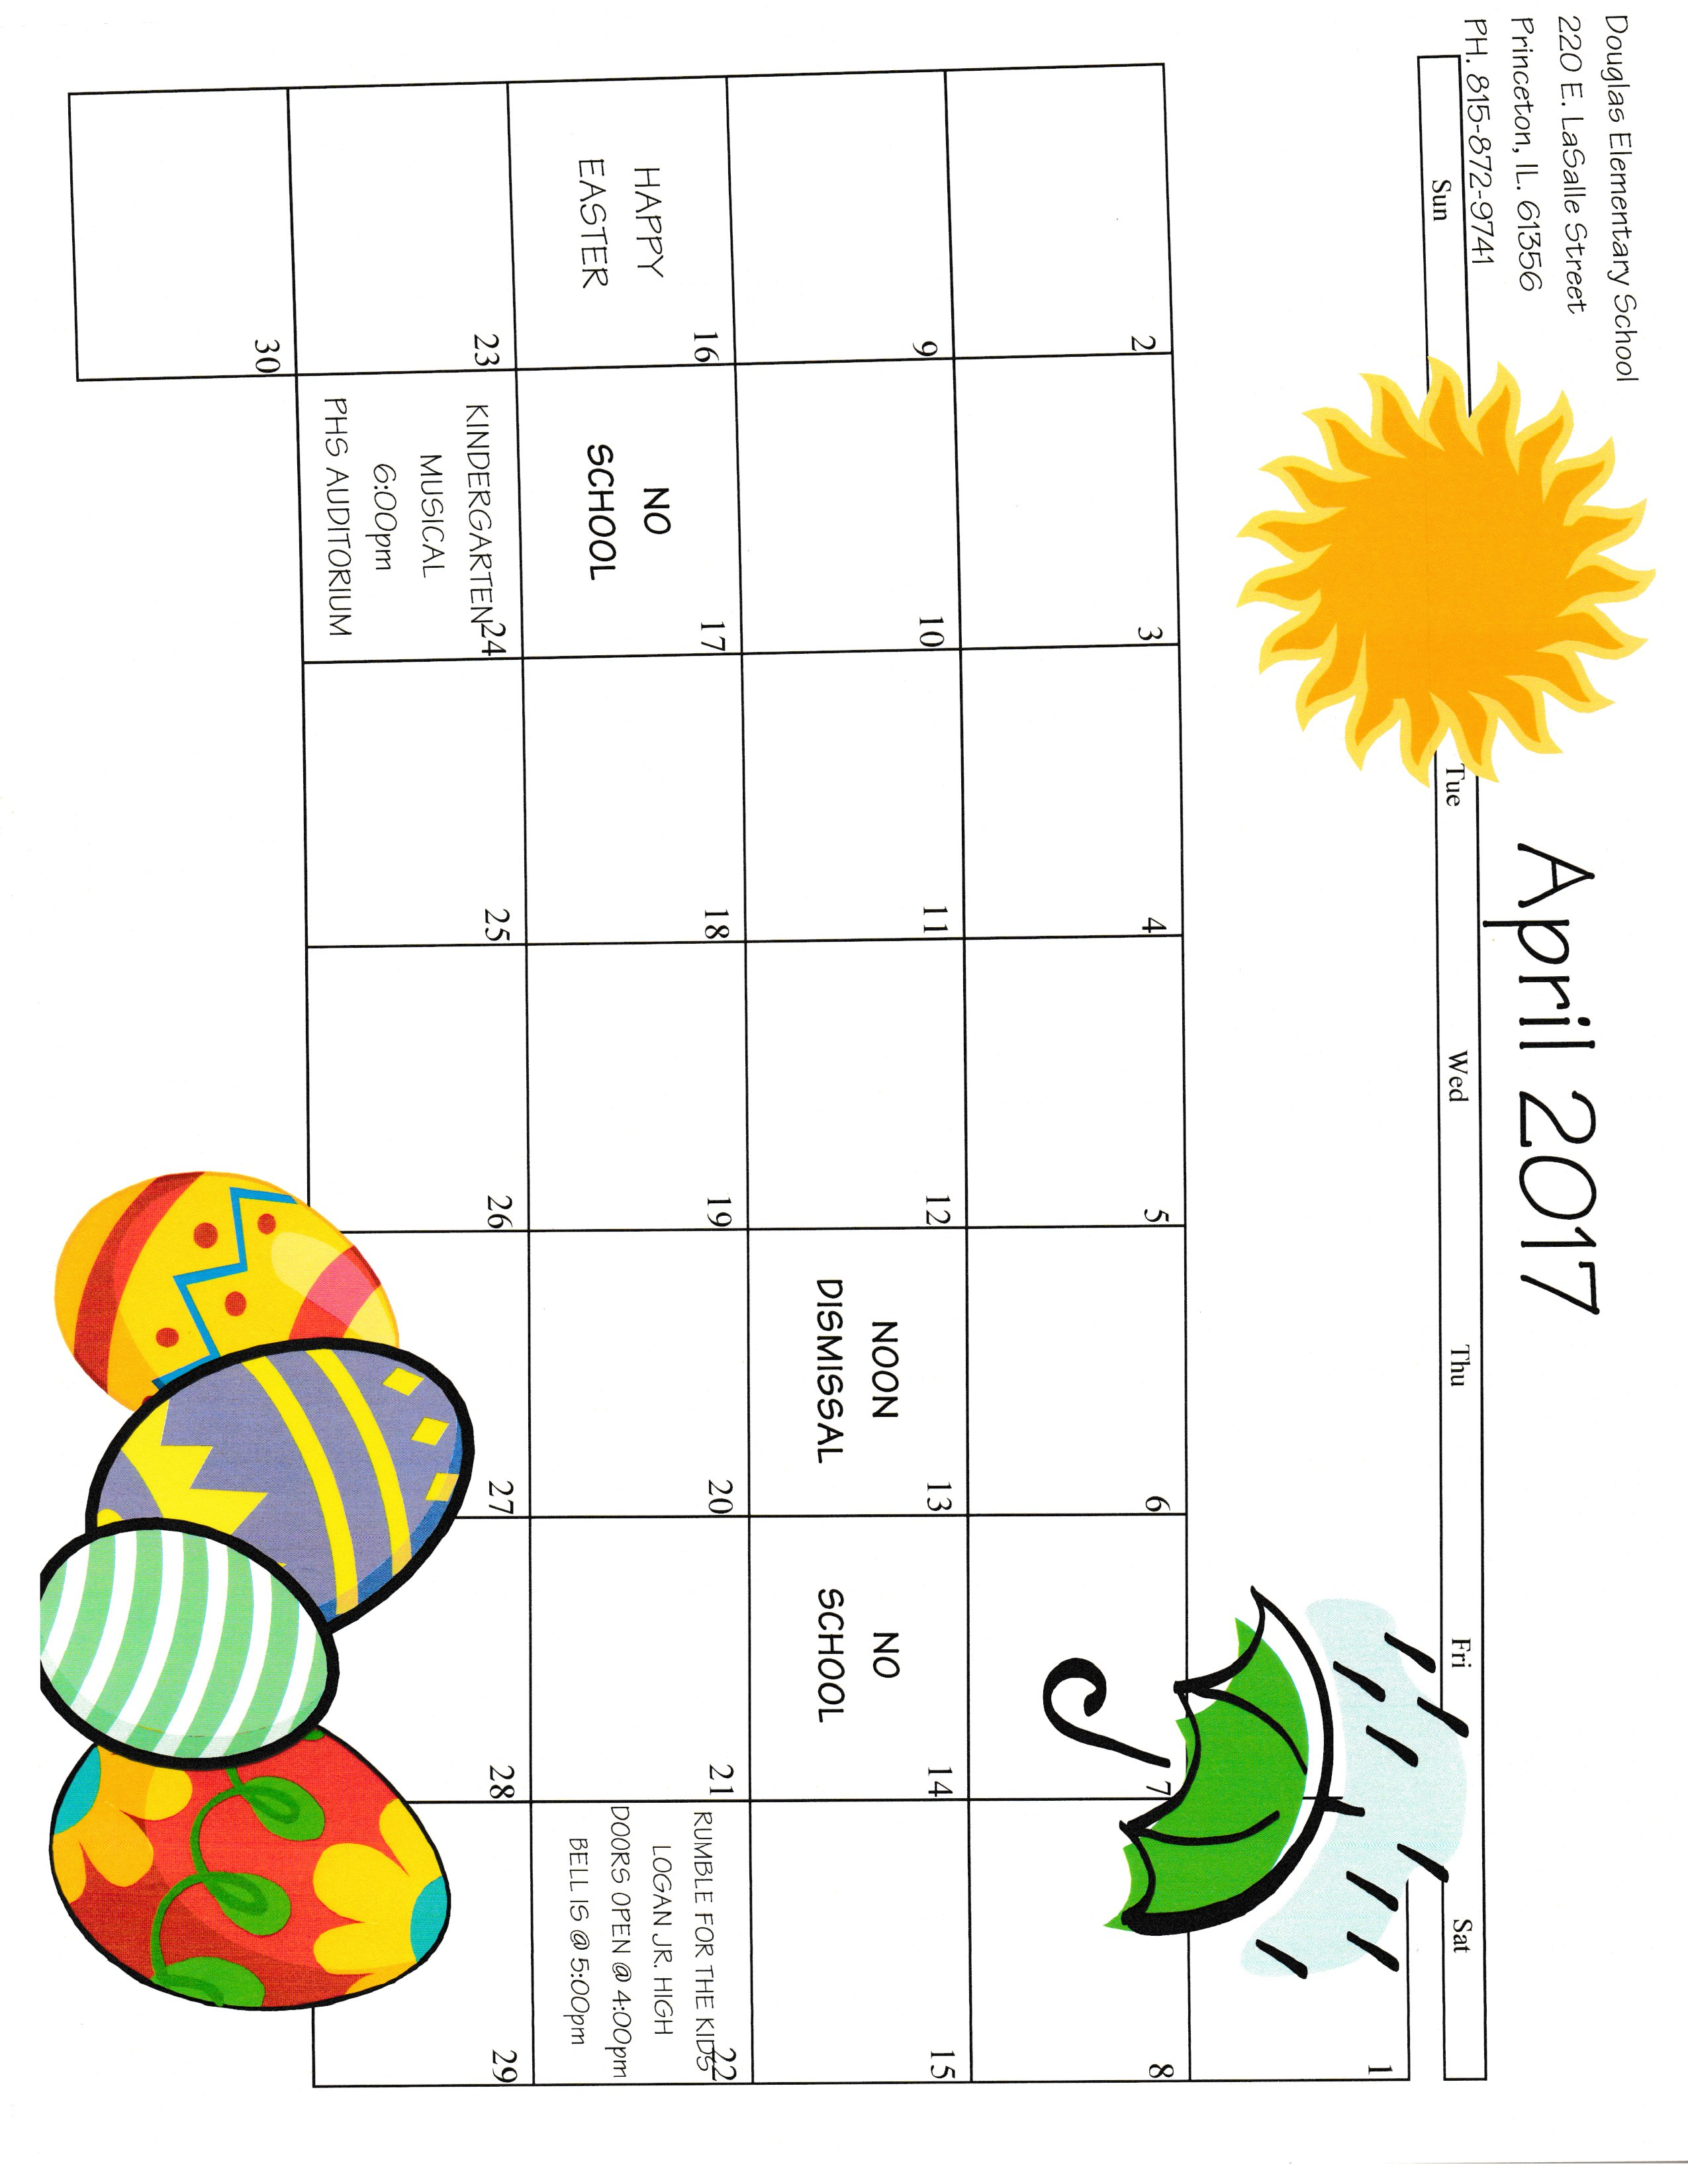 115 calendar January 2018 calendar with holidays in printable format - united states includes 2018 observances, fun facts & religious holidays: christian, catholic, jewish & muslim.